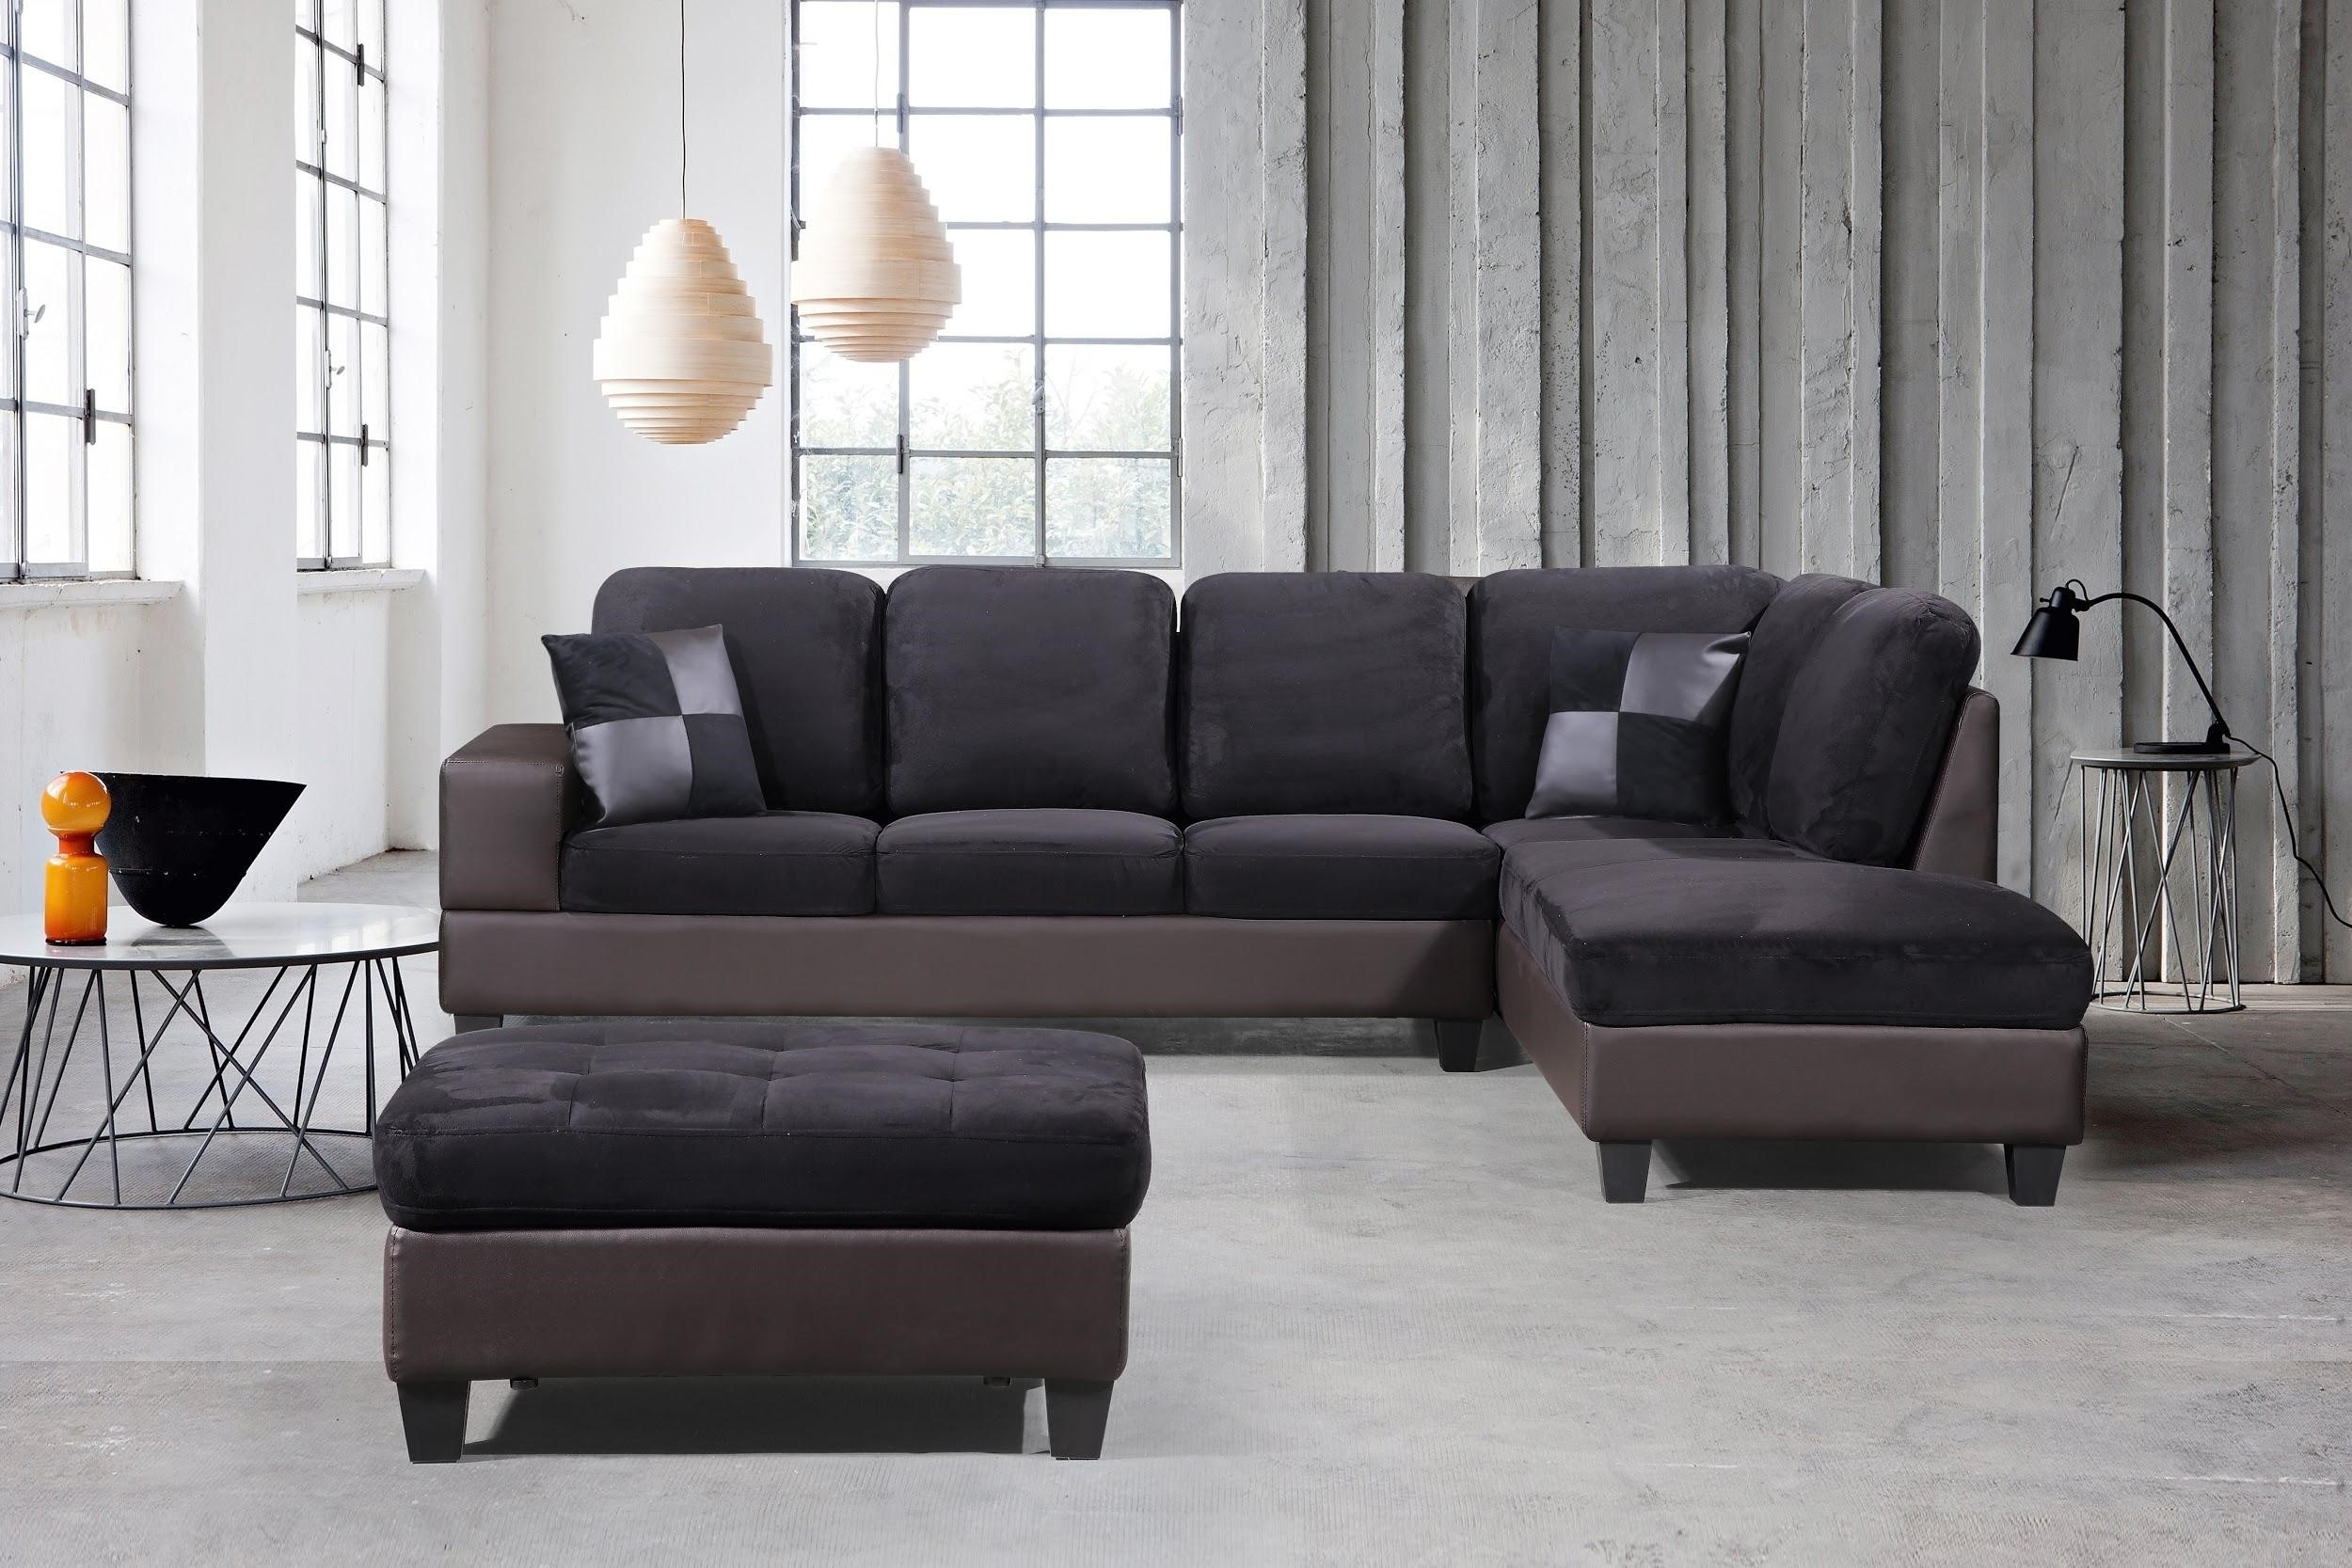 3 Piece Modern Right Microfiber / Faux Leather Sectional With Regard To 3Pc Polyfiber Sectional Sofas (View 11 of 15)